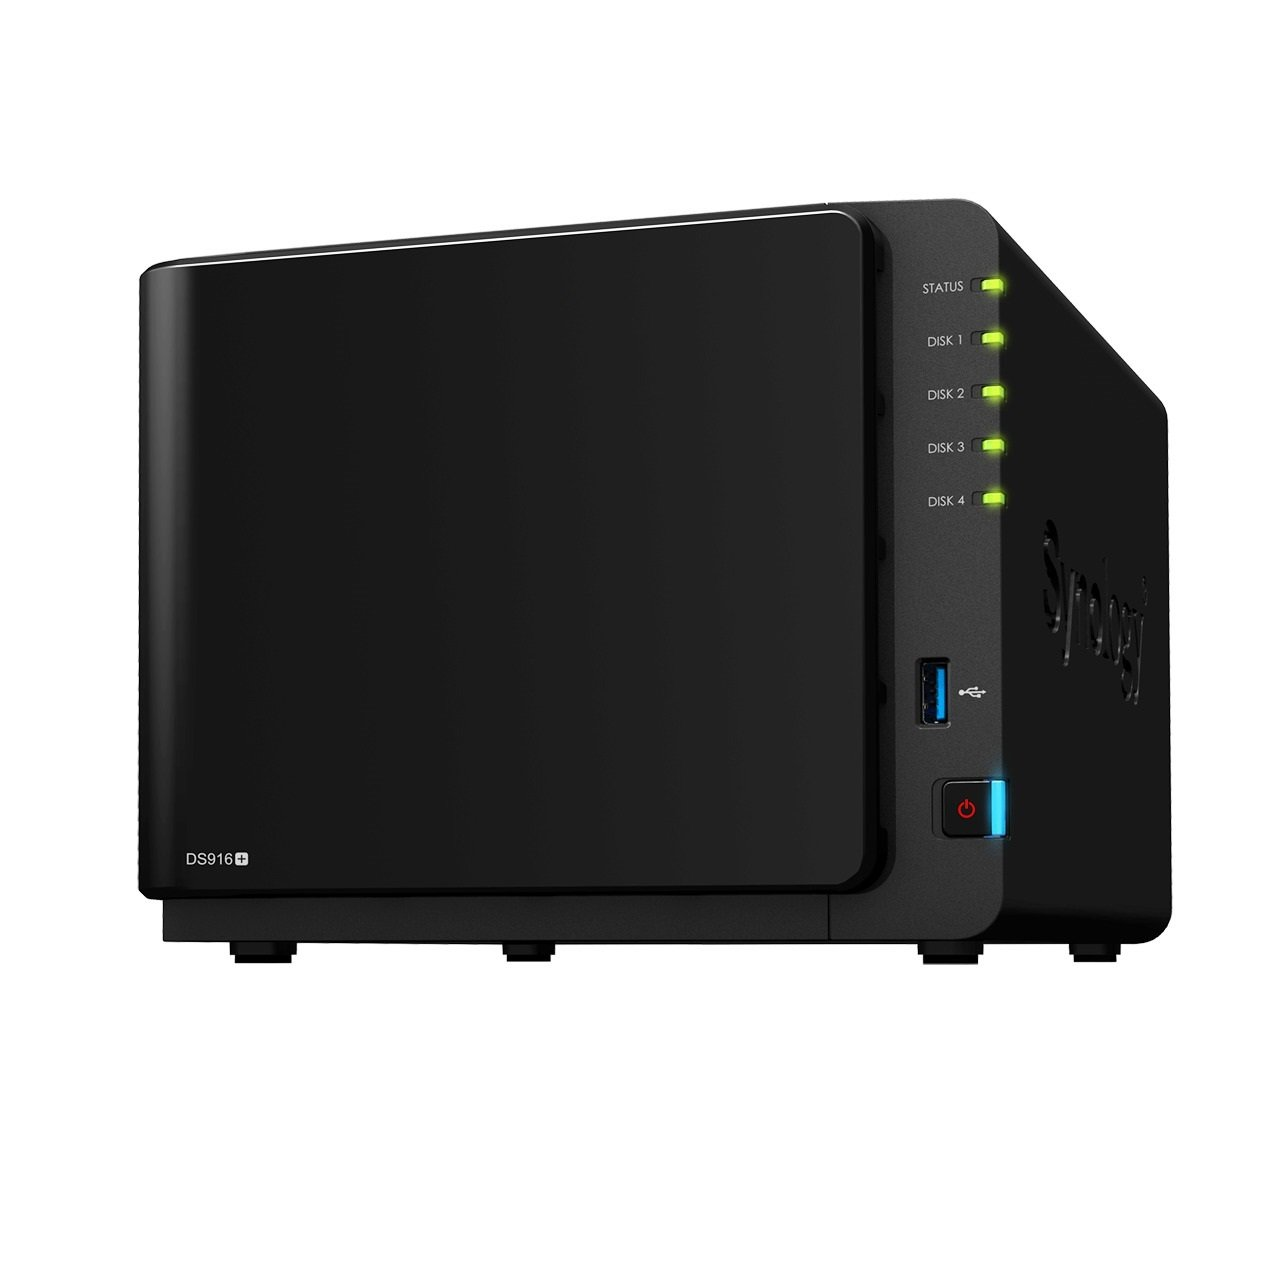 Synology DiskStation DS916+ - Dispositivo de almacenamiento en red NAS  (Intel Celeron N3060, 4 bahías, 2 GB RAM, USB 3.0, SATA II/III, Gigabit), negro 4 bahías Synology' DS916+(2GB)